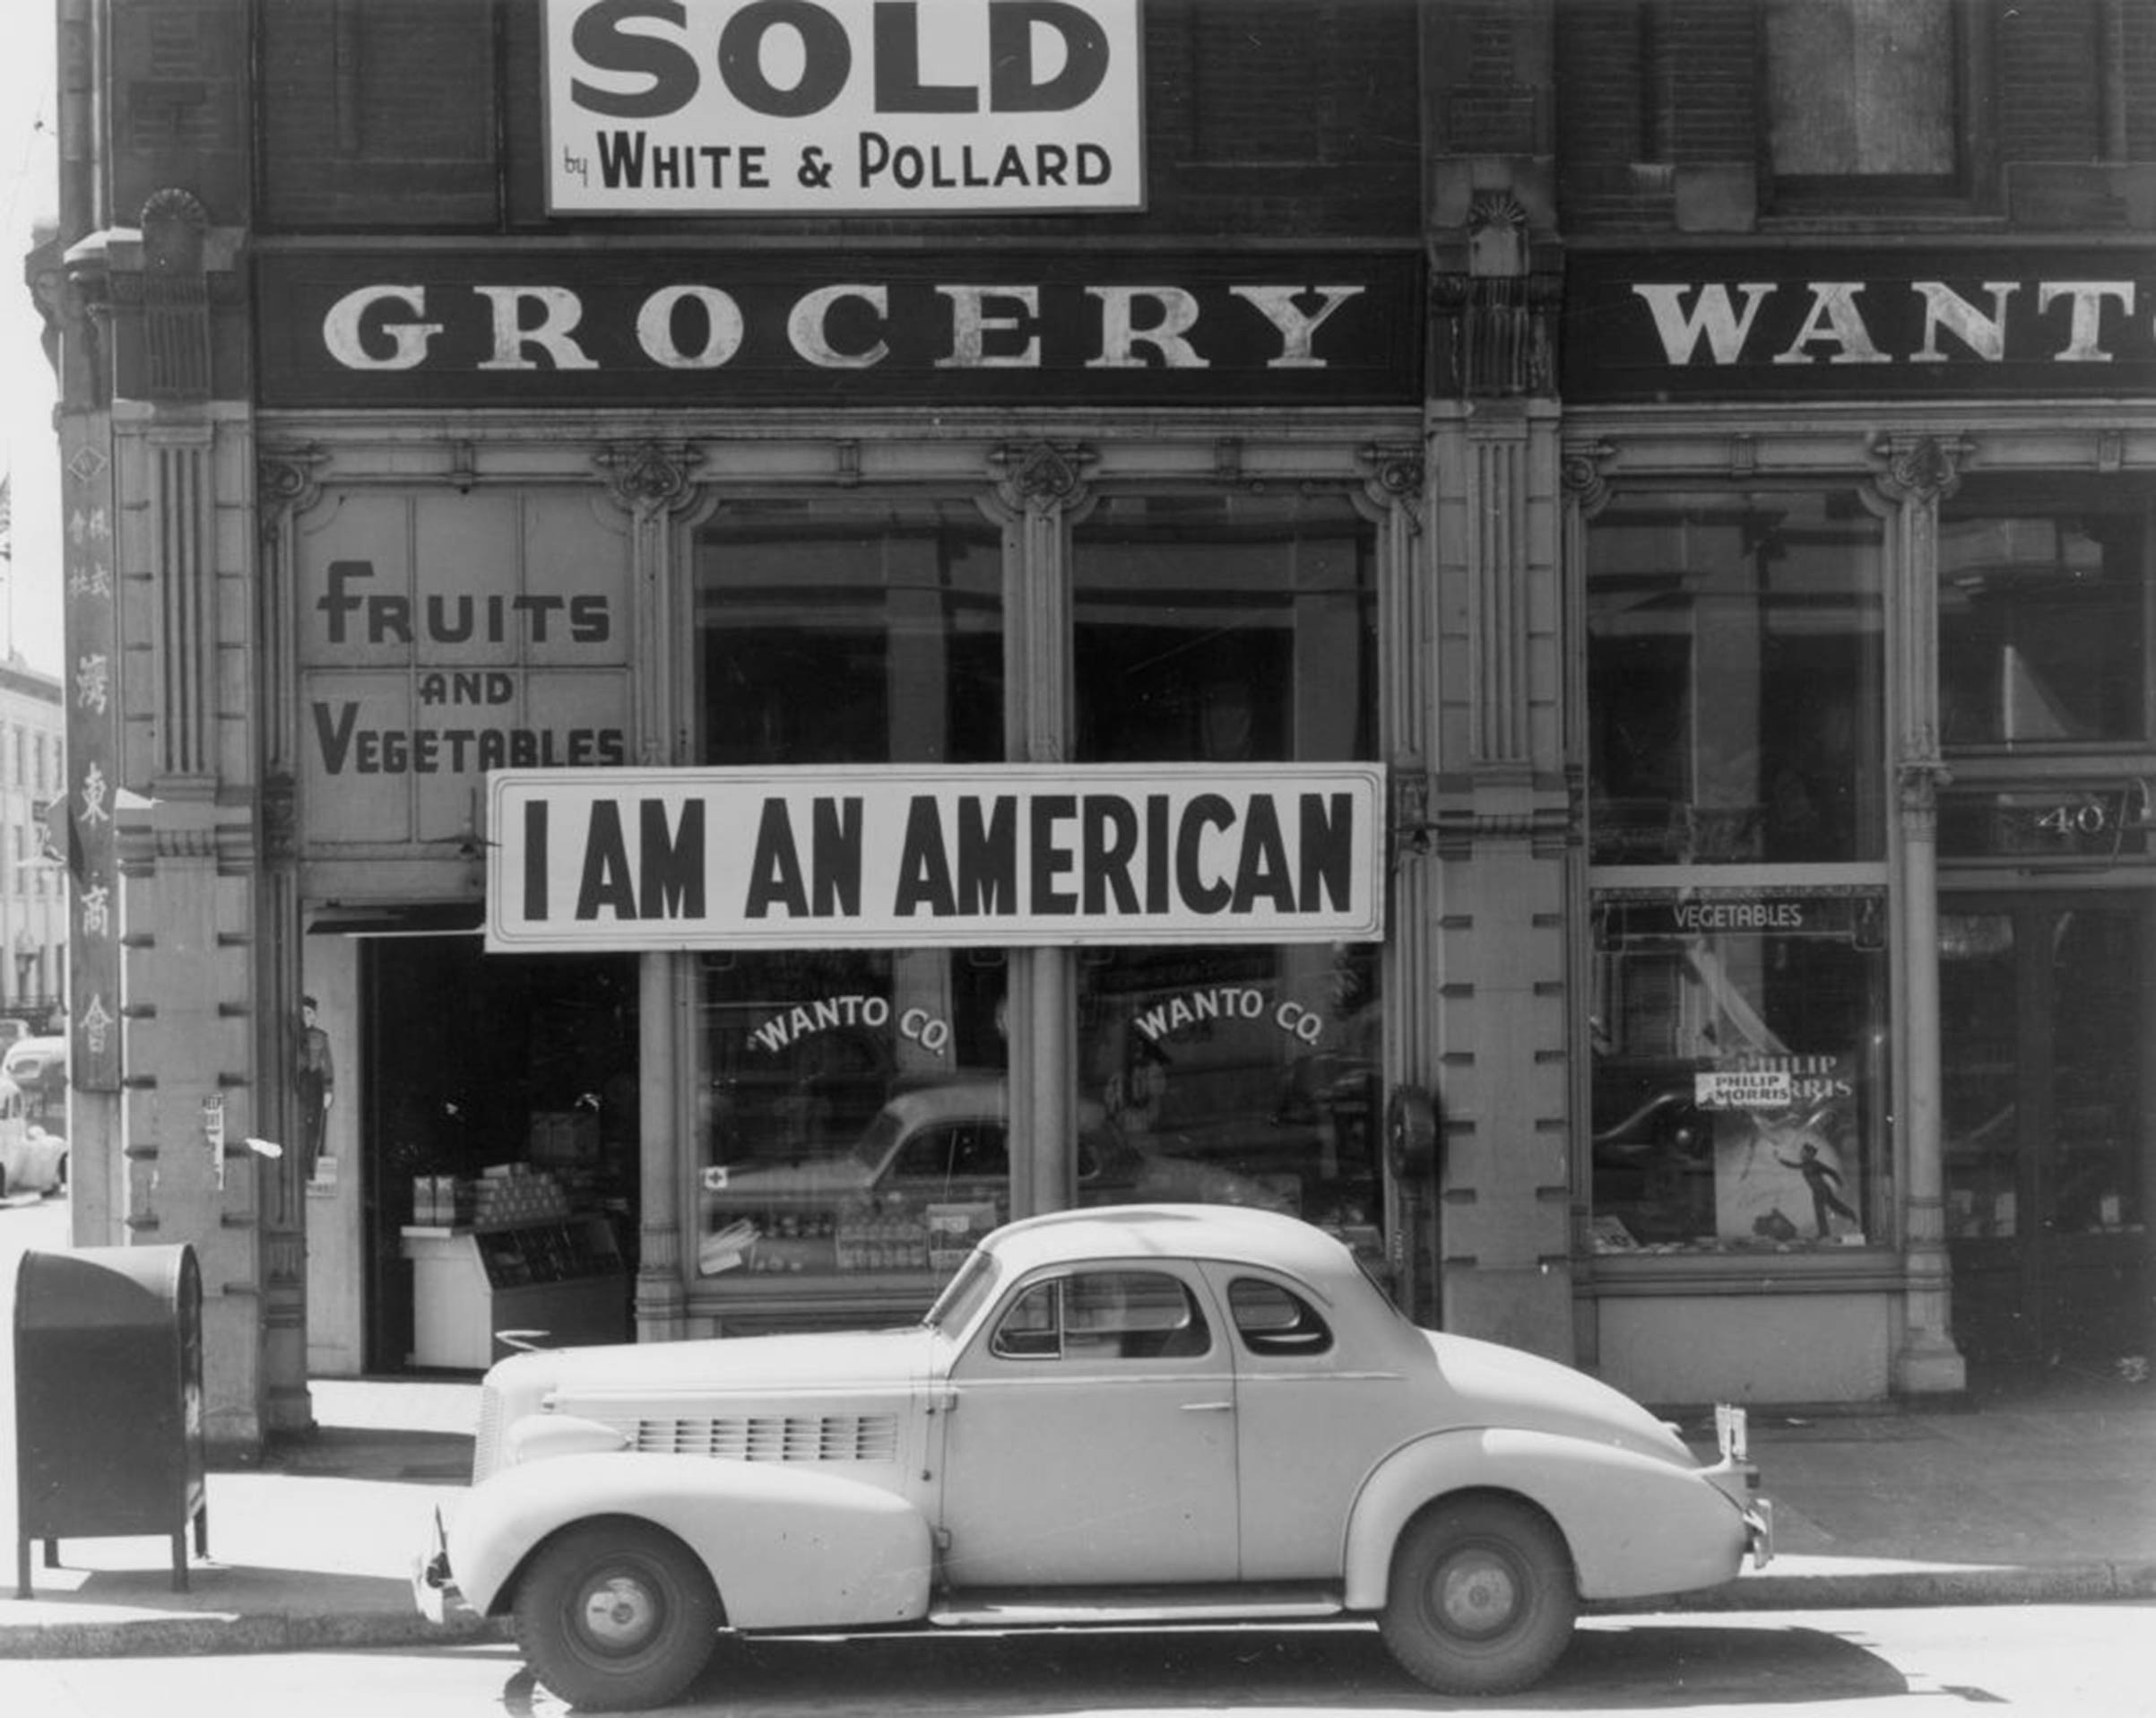 The day after Pearl Harbor, and following evacuation orders for Japanese living in America, the owner of this shop in Oakland, California, who was a University of California graduate of Japanese descent, put this notice across his shop front on Dec. 8, 1941.